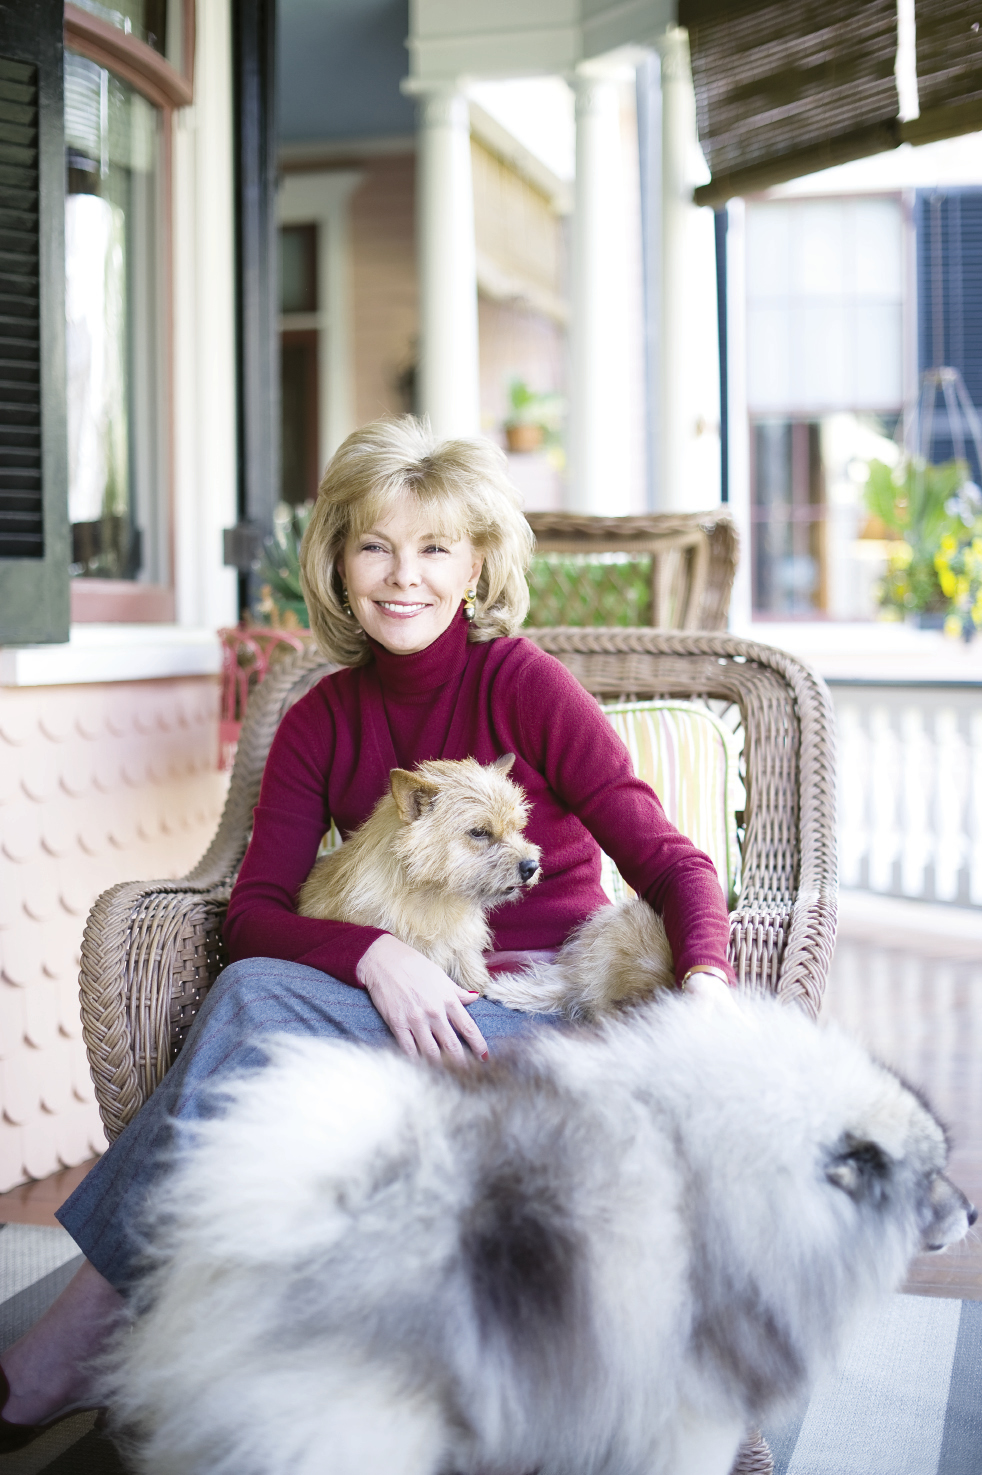 Charleston Parks Conservancy founder Darla Moore